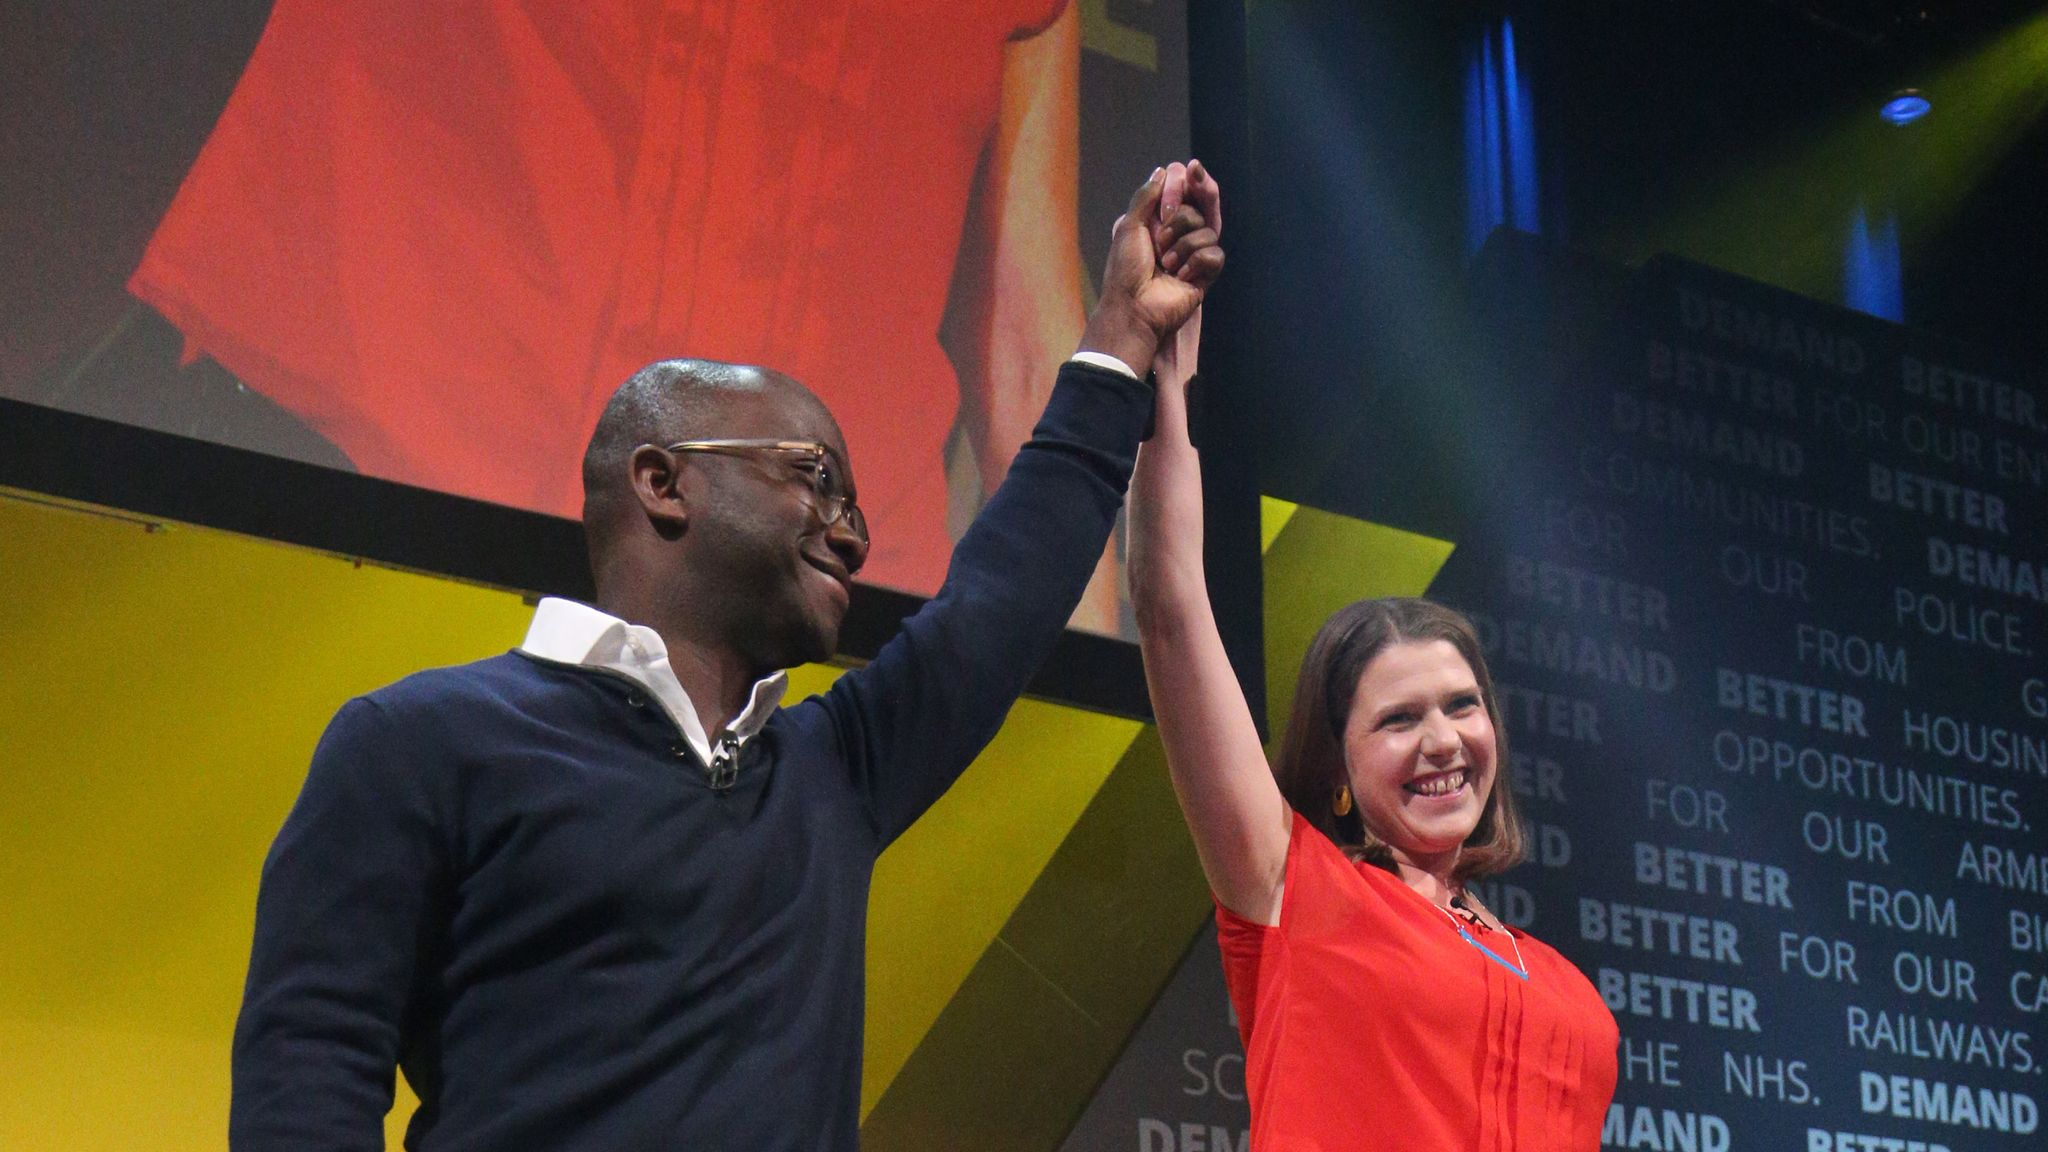 Former Tory leadership contender Sam Gyimah defects to Liberal Democrats